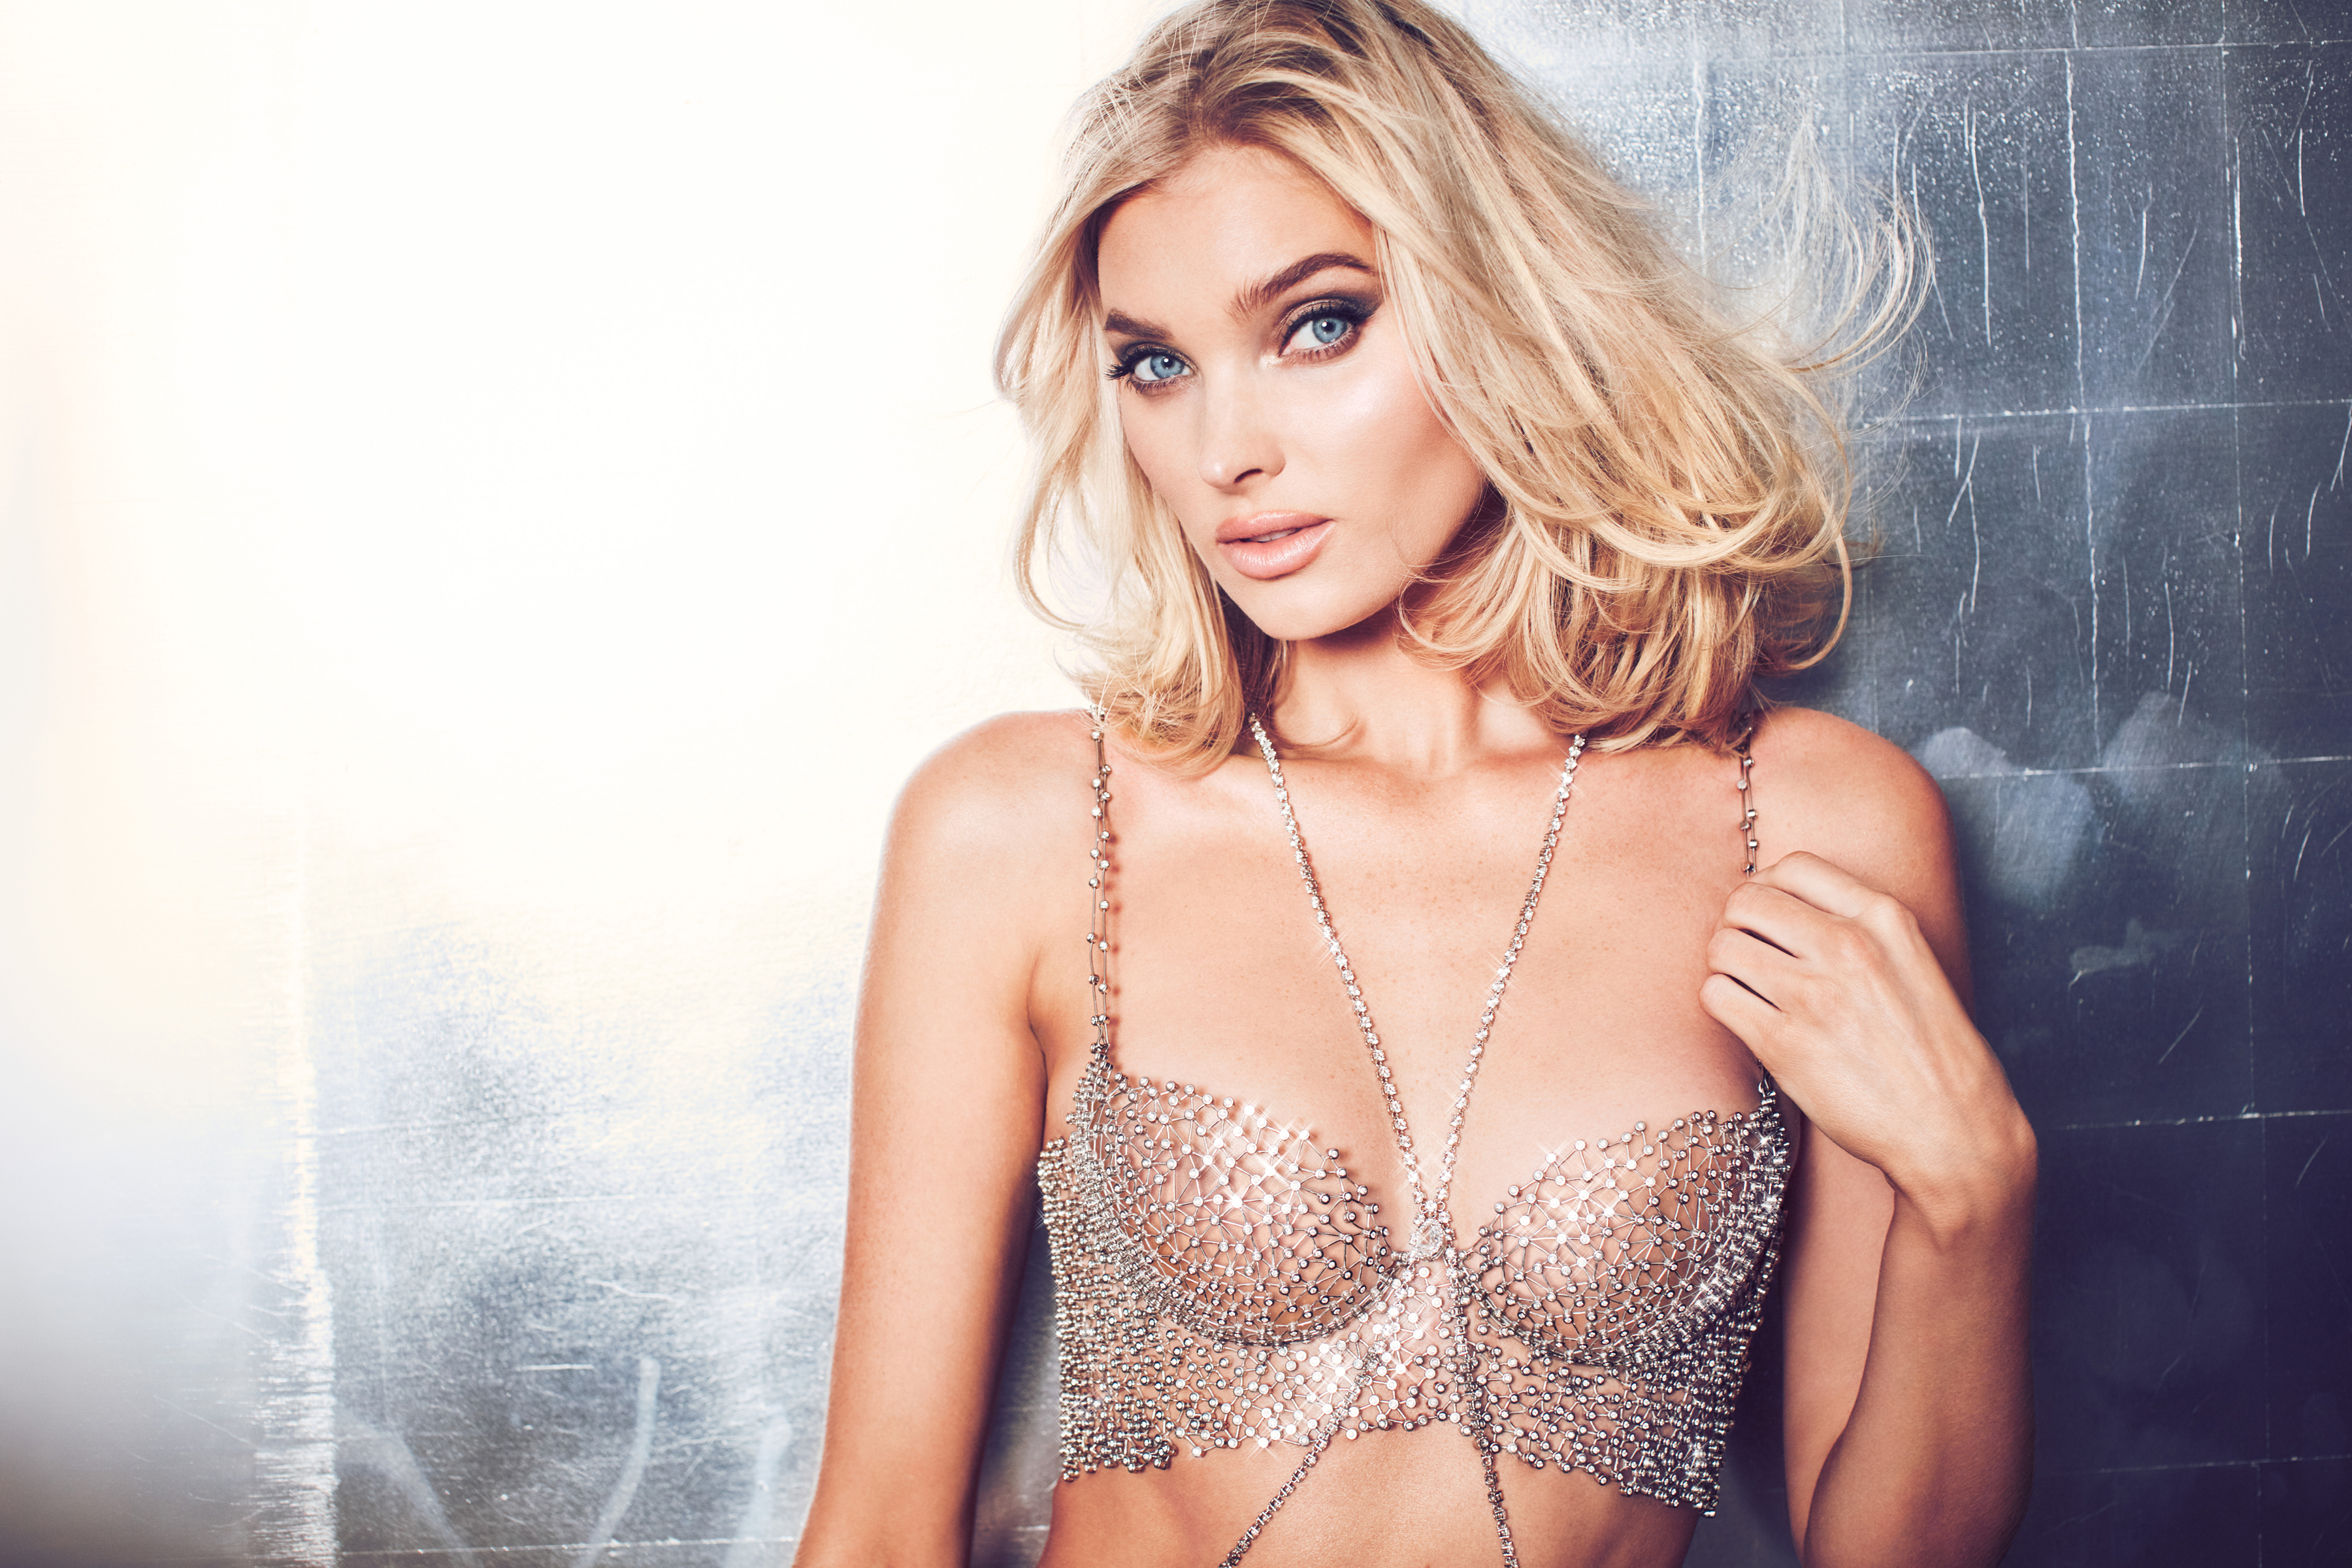 First Look: The 2018 Dream Angels Fantasy Bra